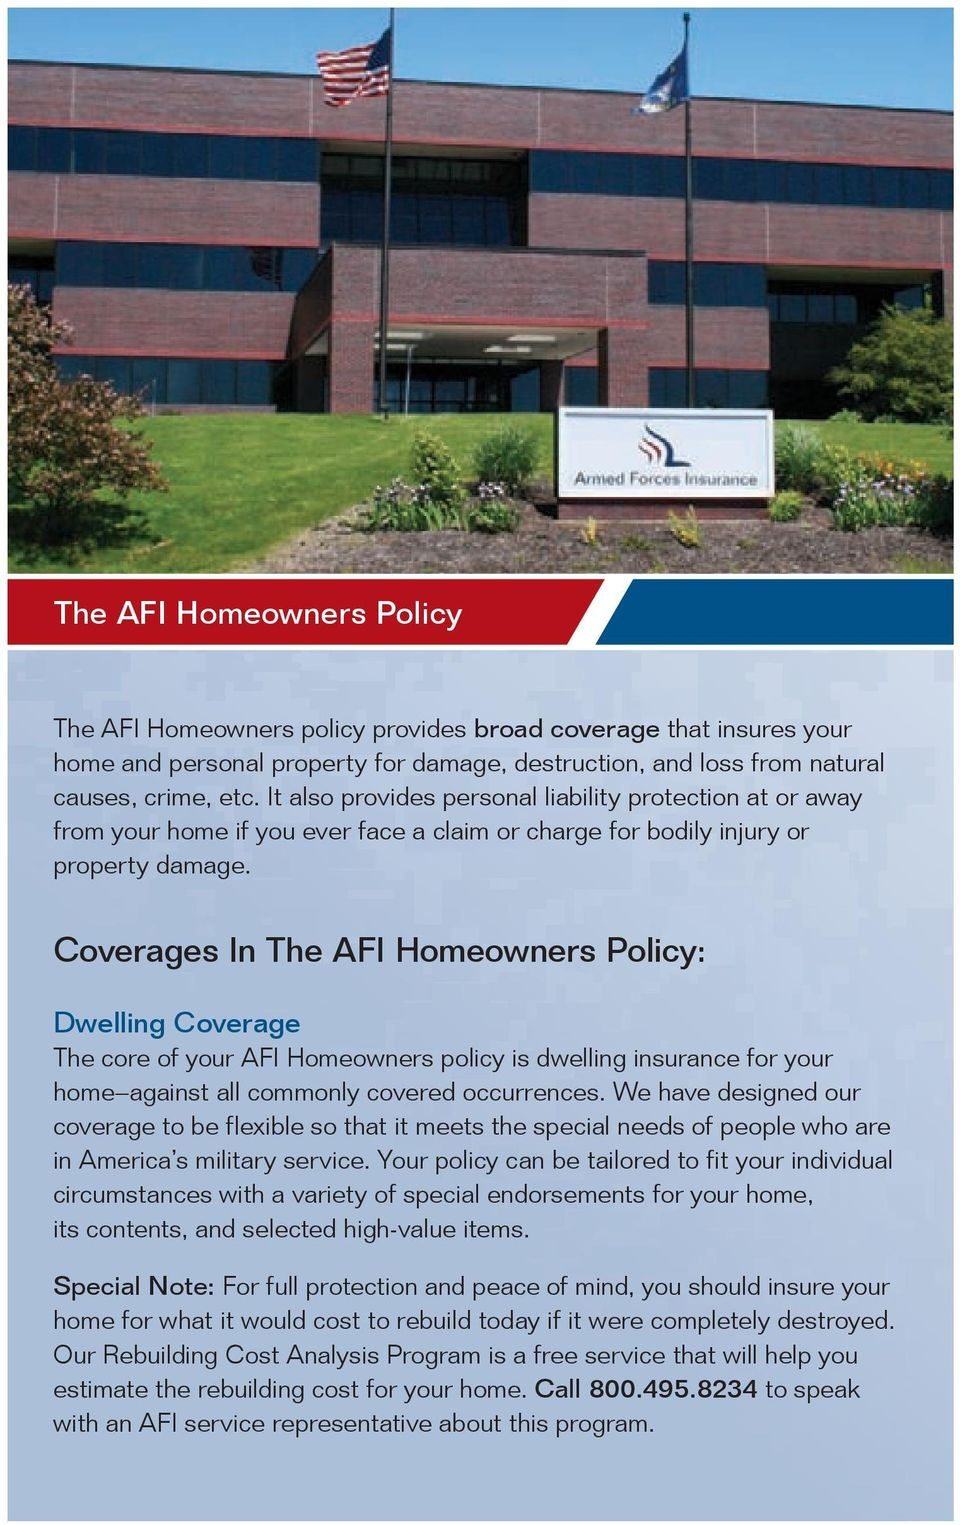 Coverages In The AFI Homeowners Policy: Dwelling Coverage The core of your AFI Homeowners policy is dwelling insurance for your home against all commonly covered occurrences.